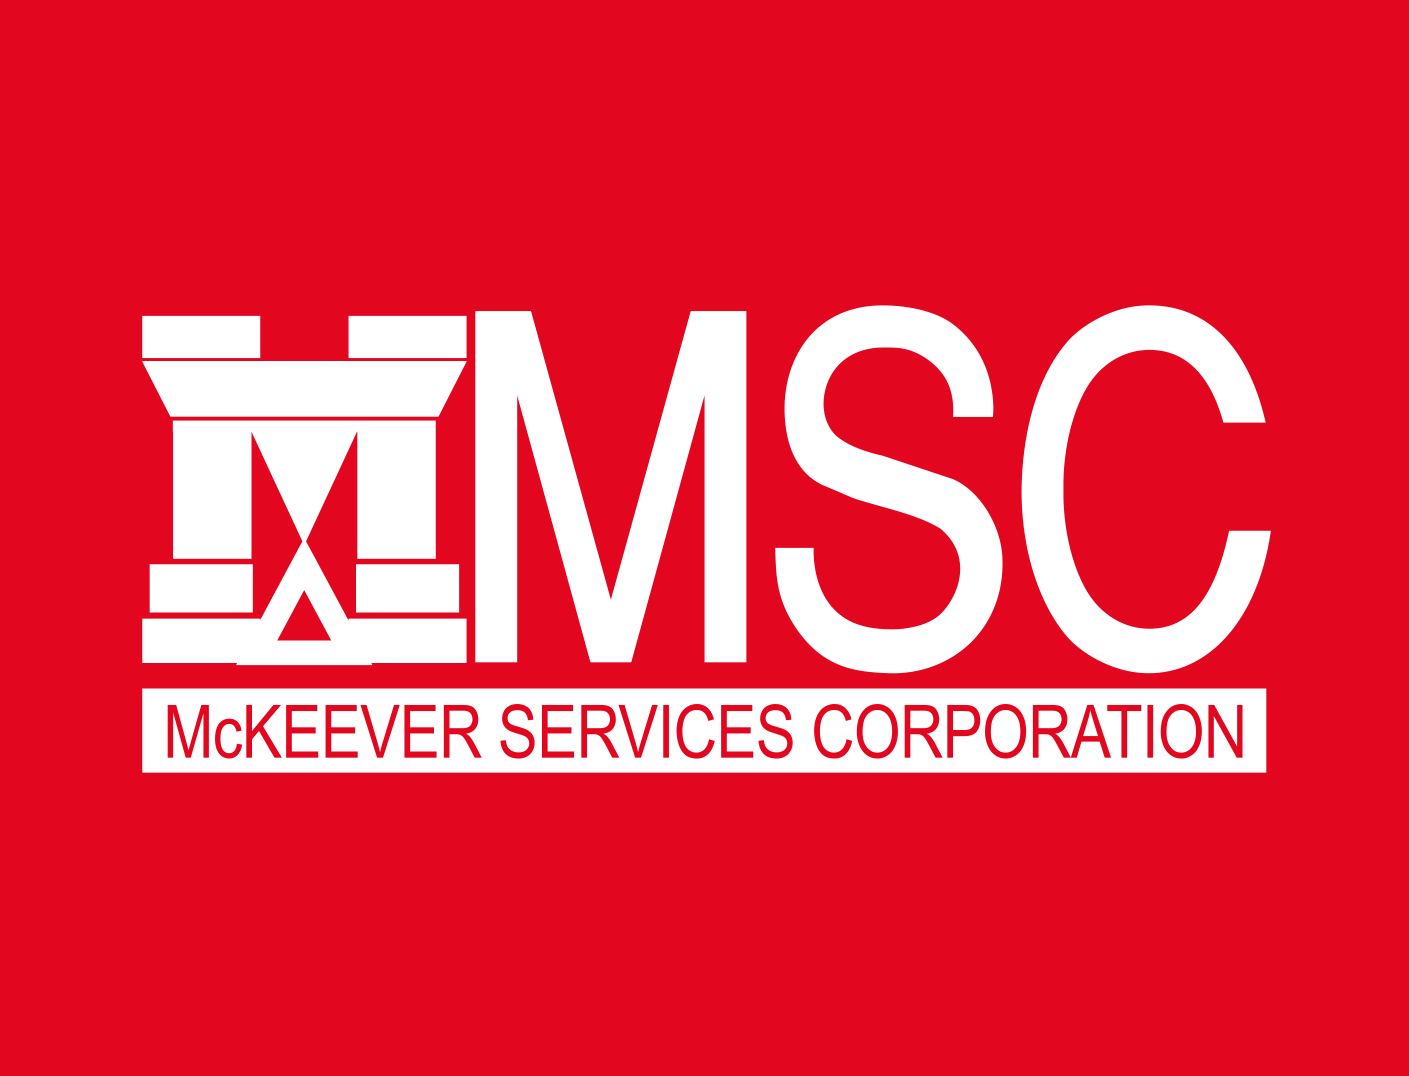 MSC - McKeever Services Corporation